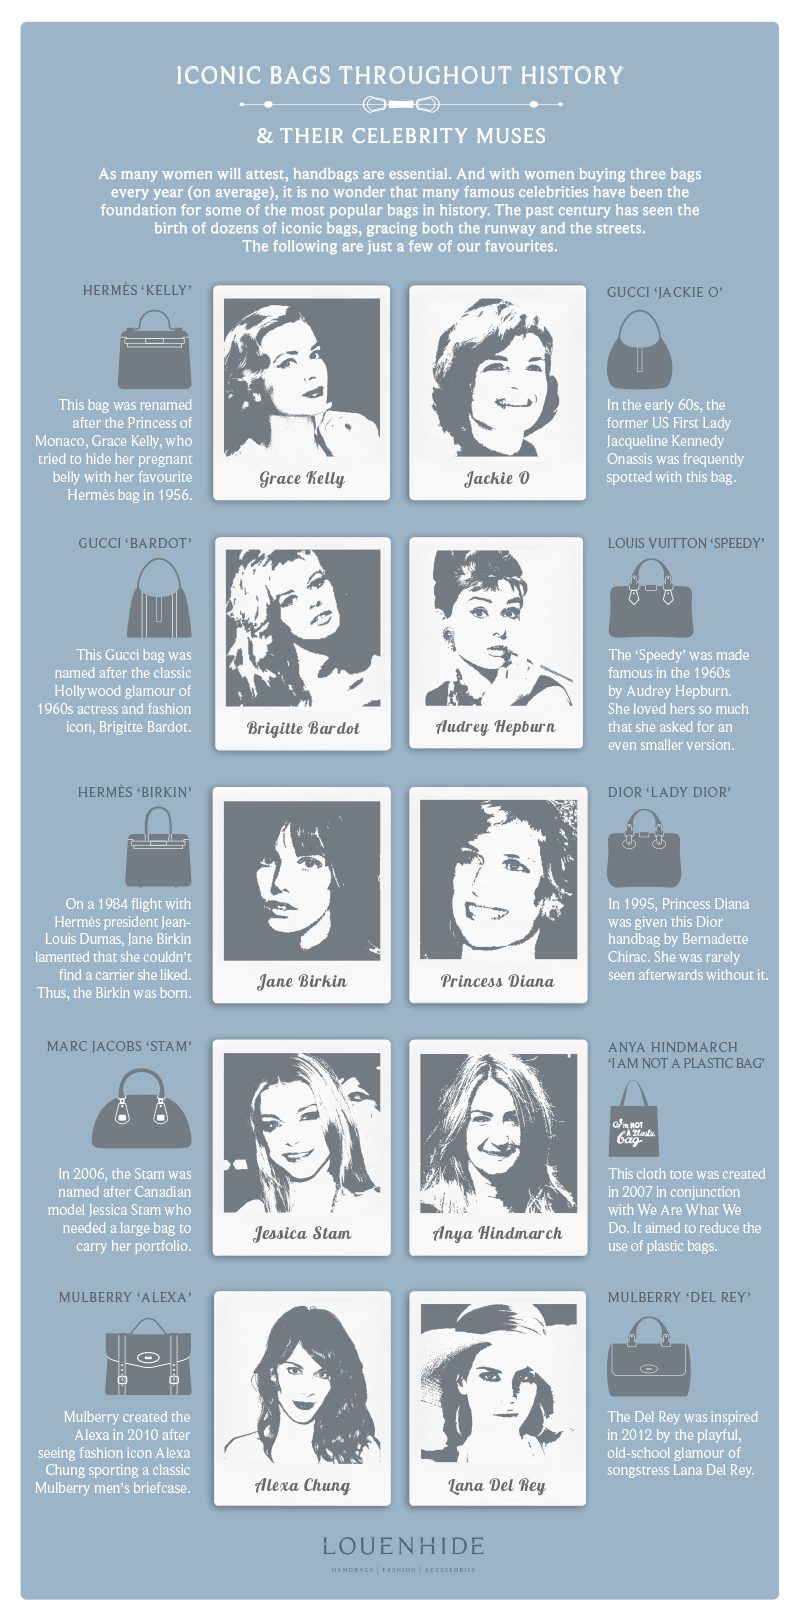 History of Iconic Handbags Infographic